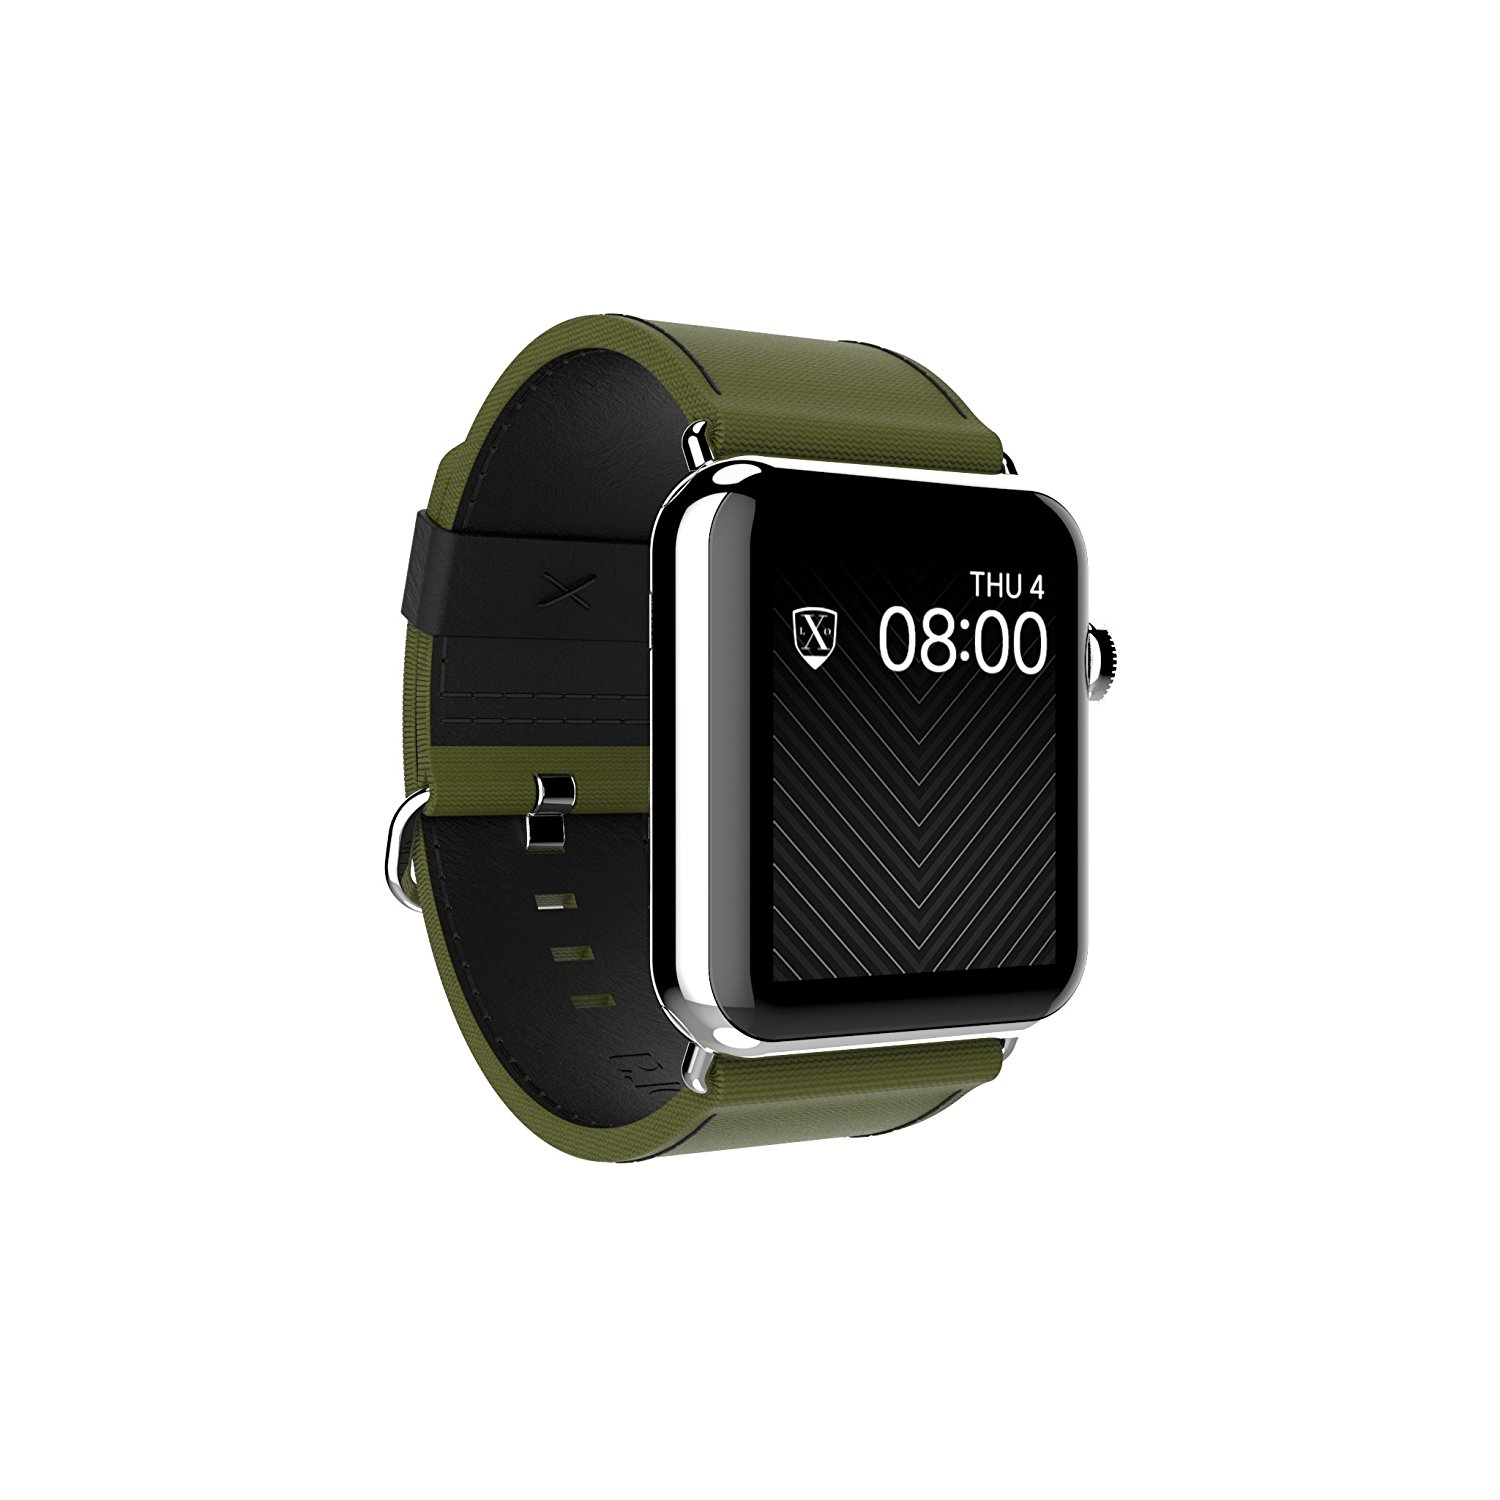 Luxeora Strap for Apple Watch - Luxeora Bravo Nylon Leather Band with Polished Stainless Steel Buckle - 42mm - Spec-Op Green and Black - Fits Series 3 Series 2 Series 1 Sport and Watch Edition